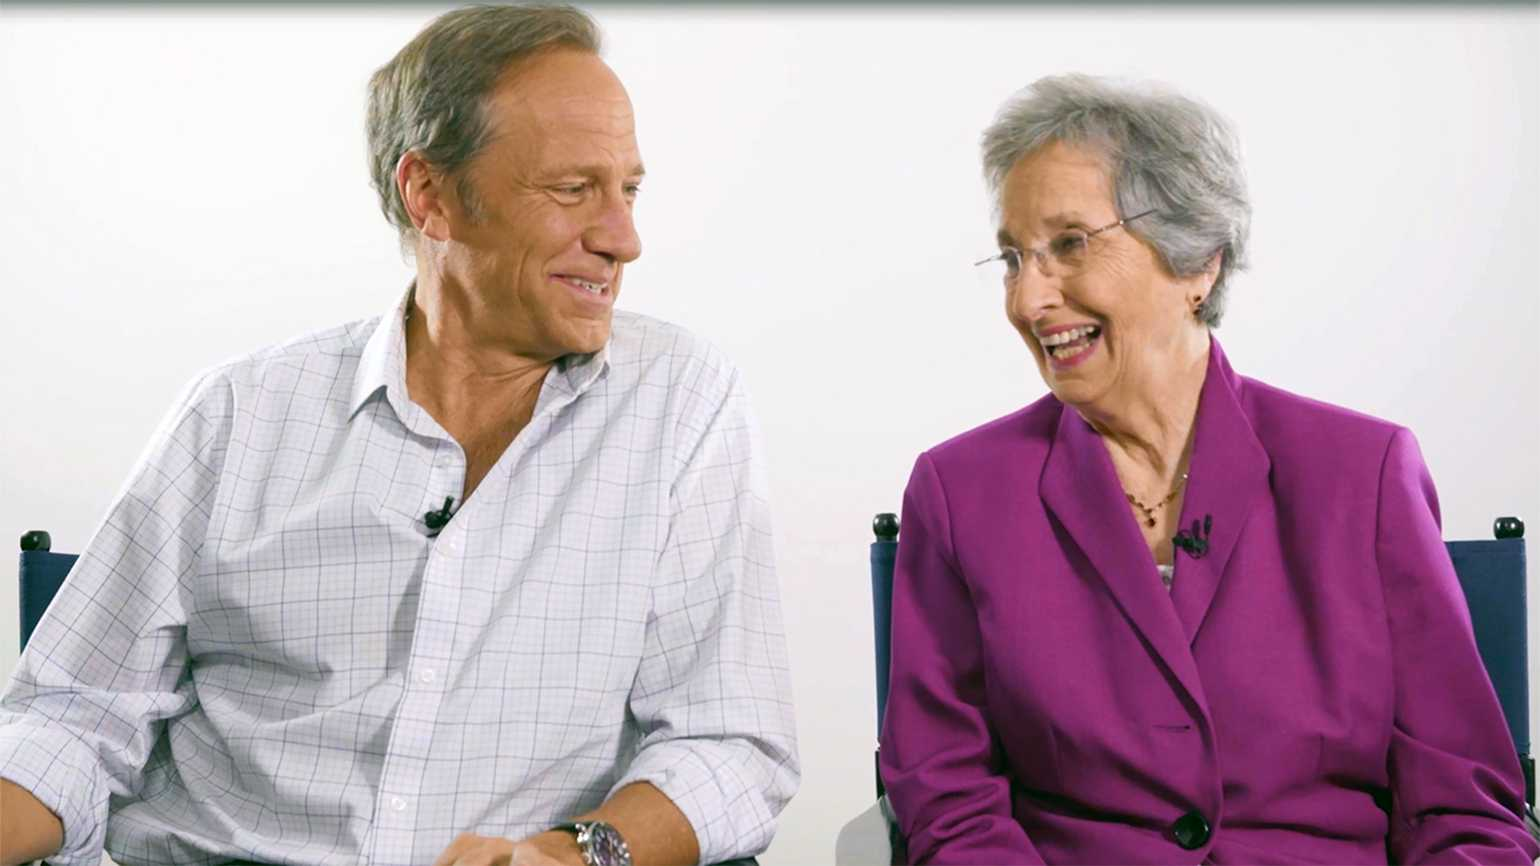 TV host Mike Rowe and his mother, Peggy